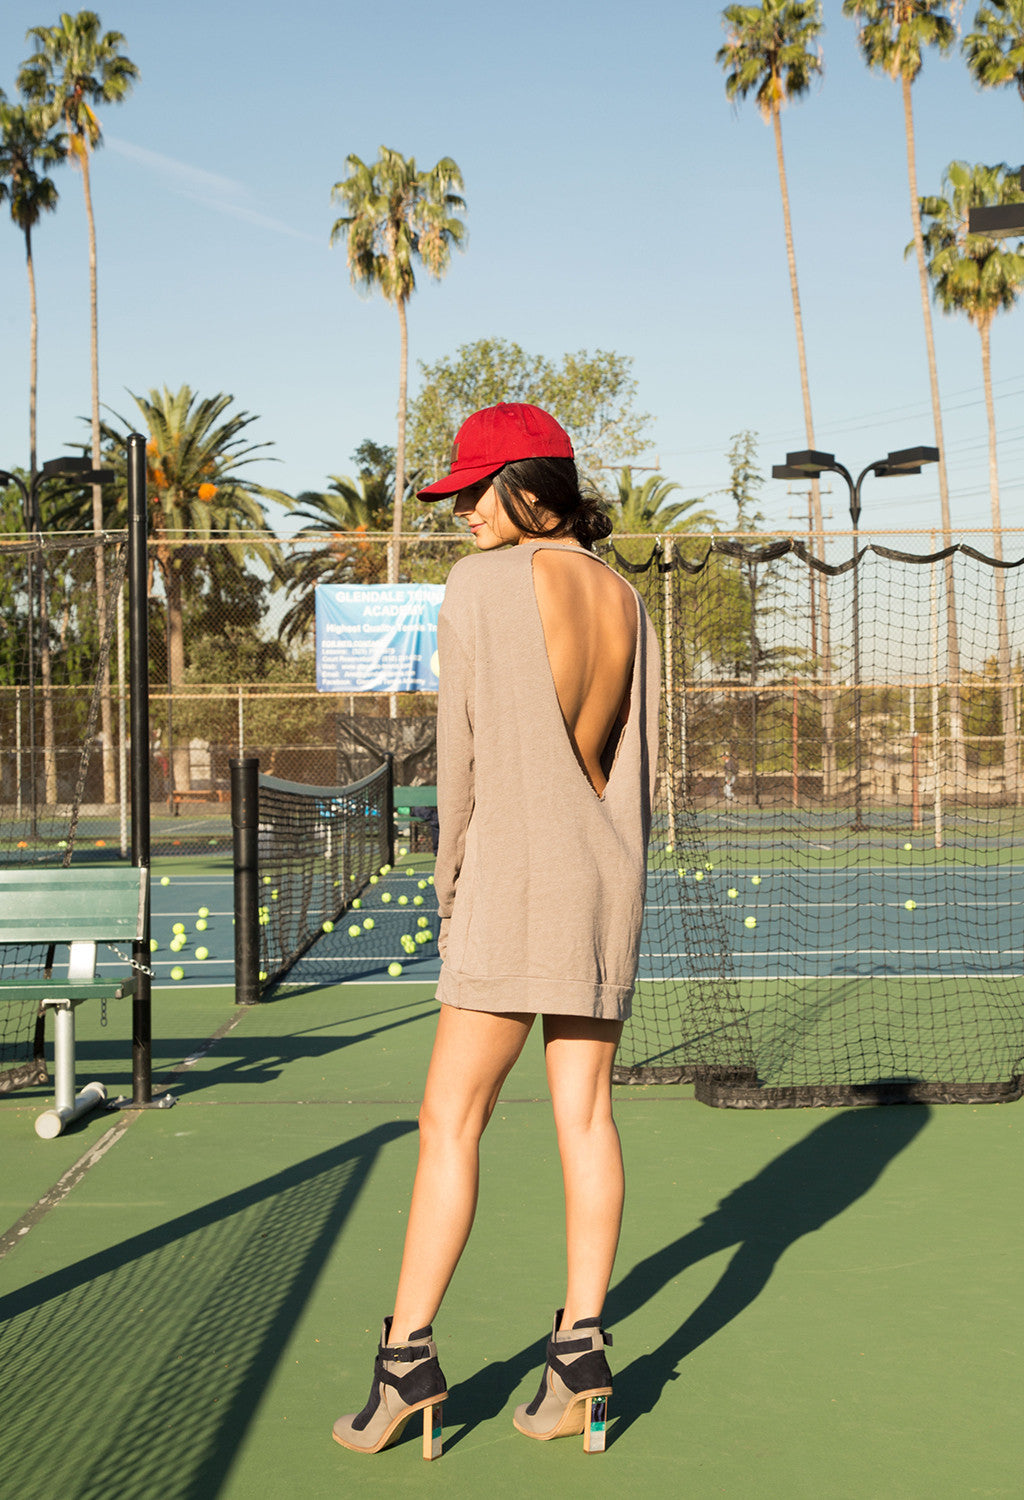 Image of model wearing DASH Label tee dress on tennis courts.